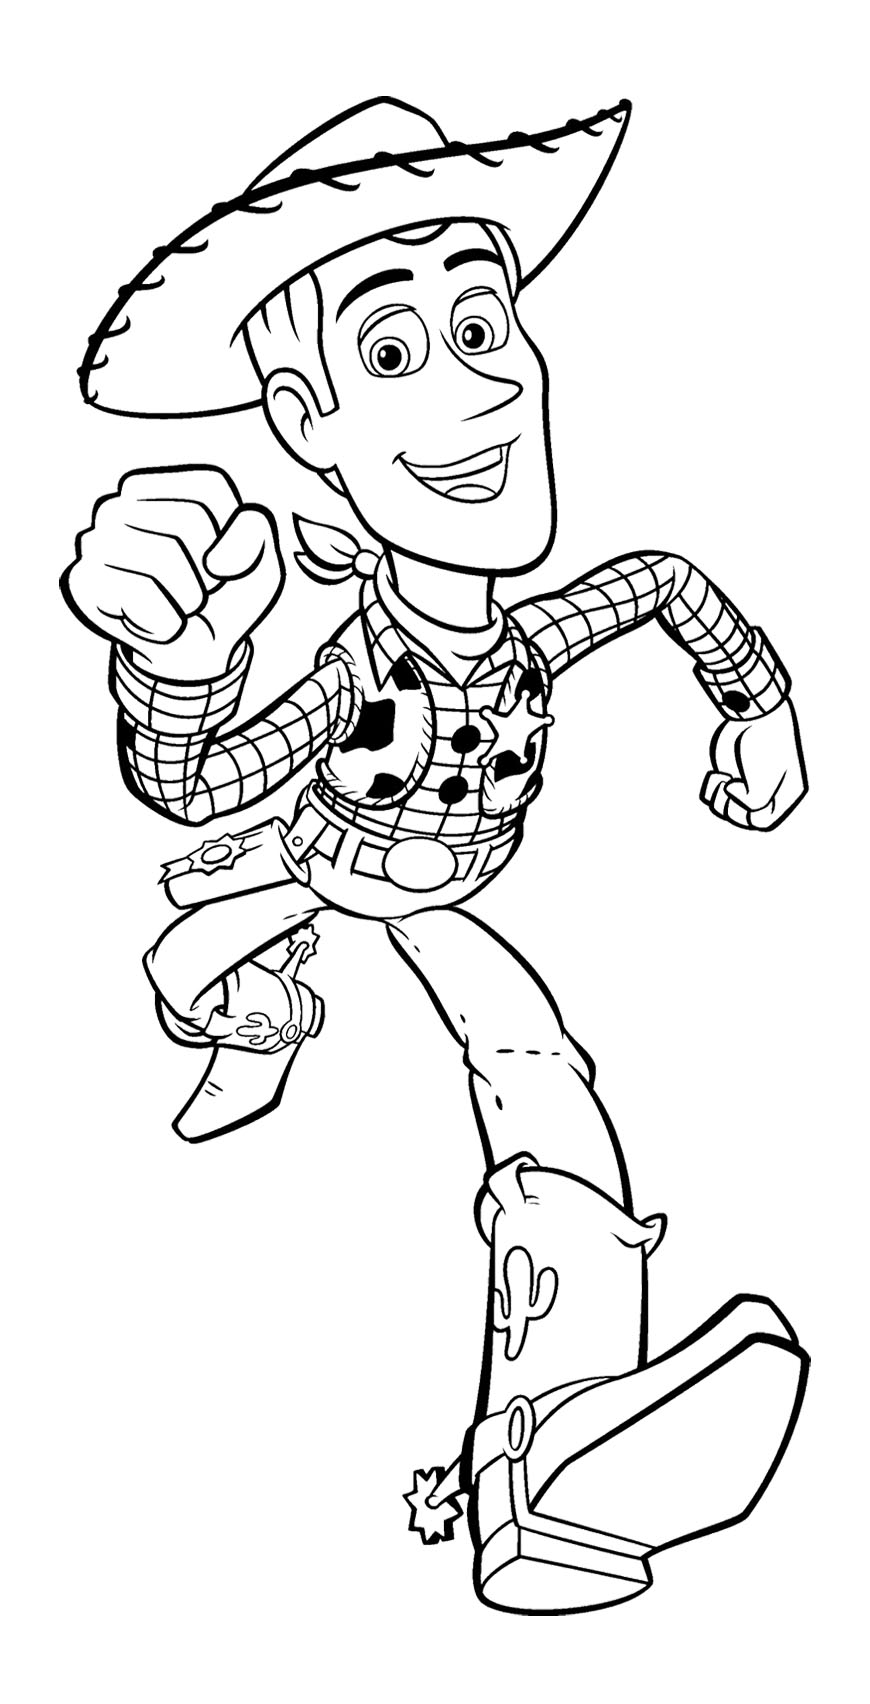 870x1704 Toy Story Woody Runs Fast Coloring Page For Kids Kids Coloring